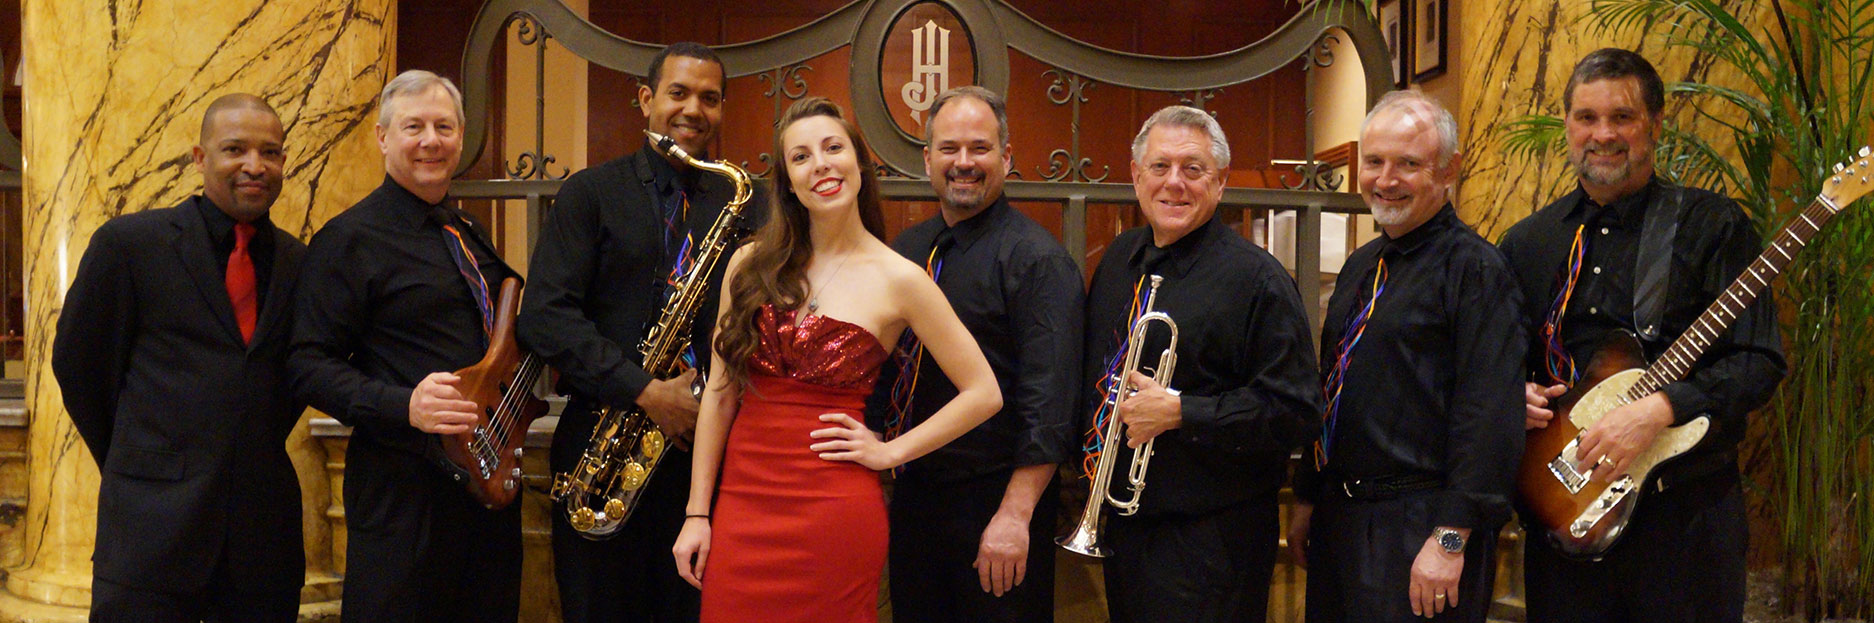 Image of RIVER CITY PARTY BAND